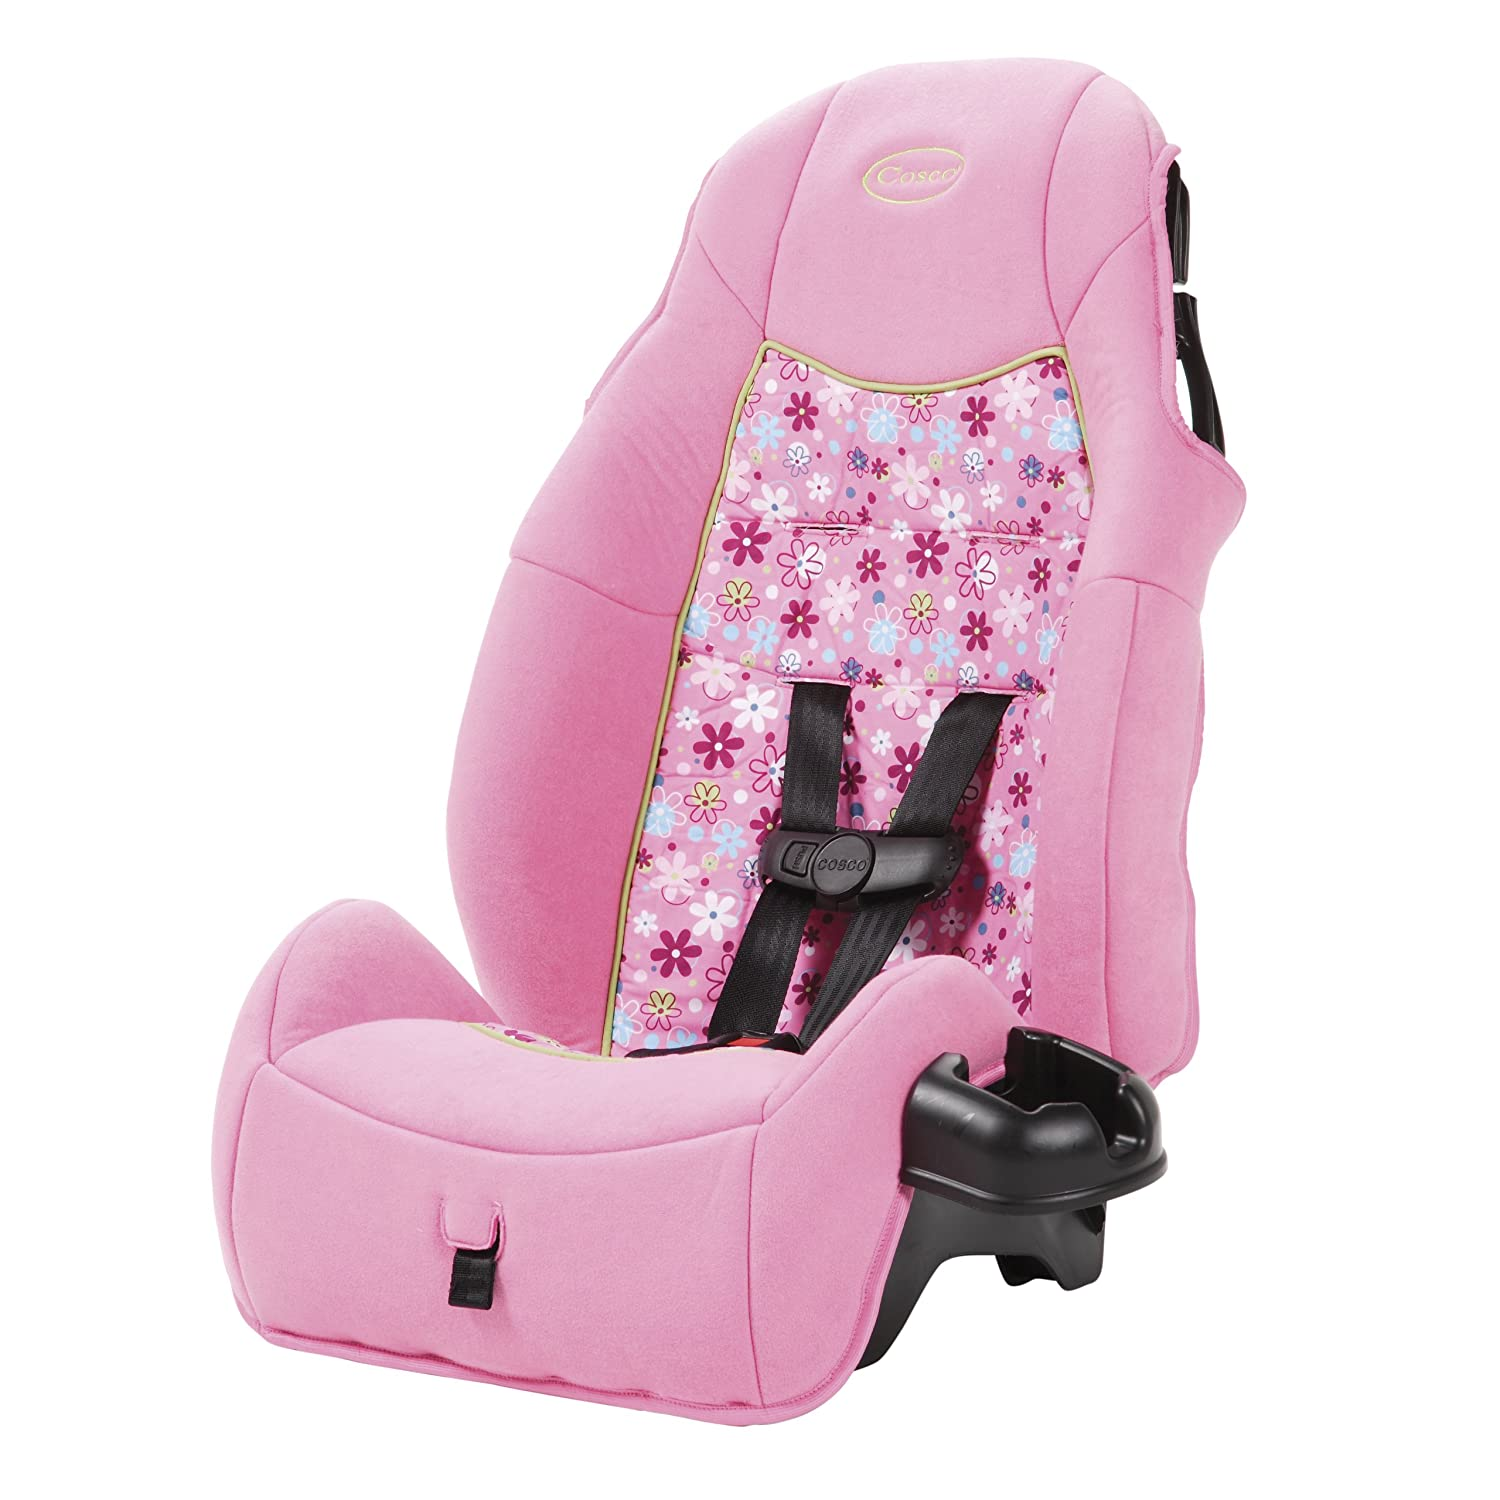 Buy Cosco Juvenile Highback Booster Seat Girl Polka Dot Posy Online At Low Prices In India